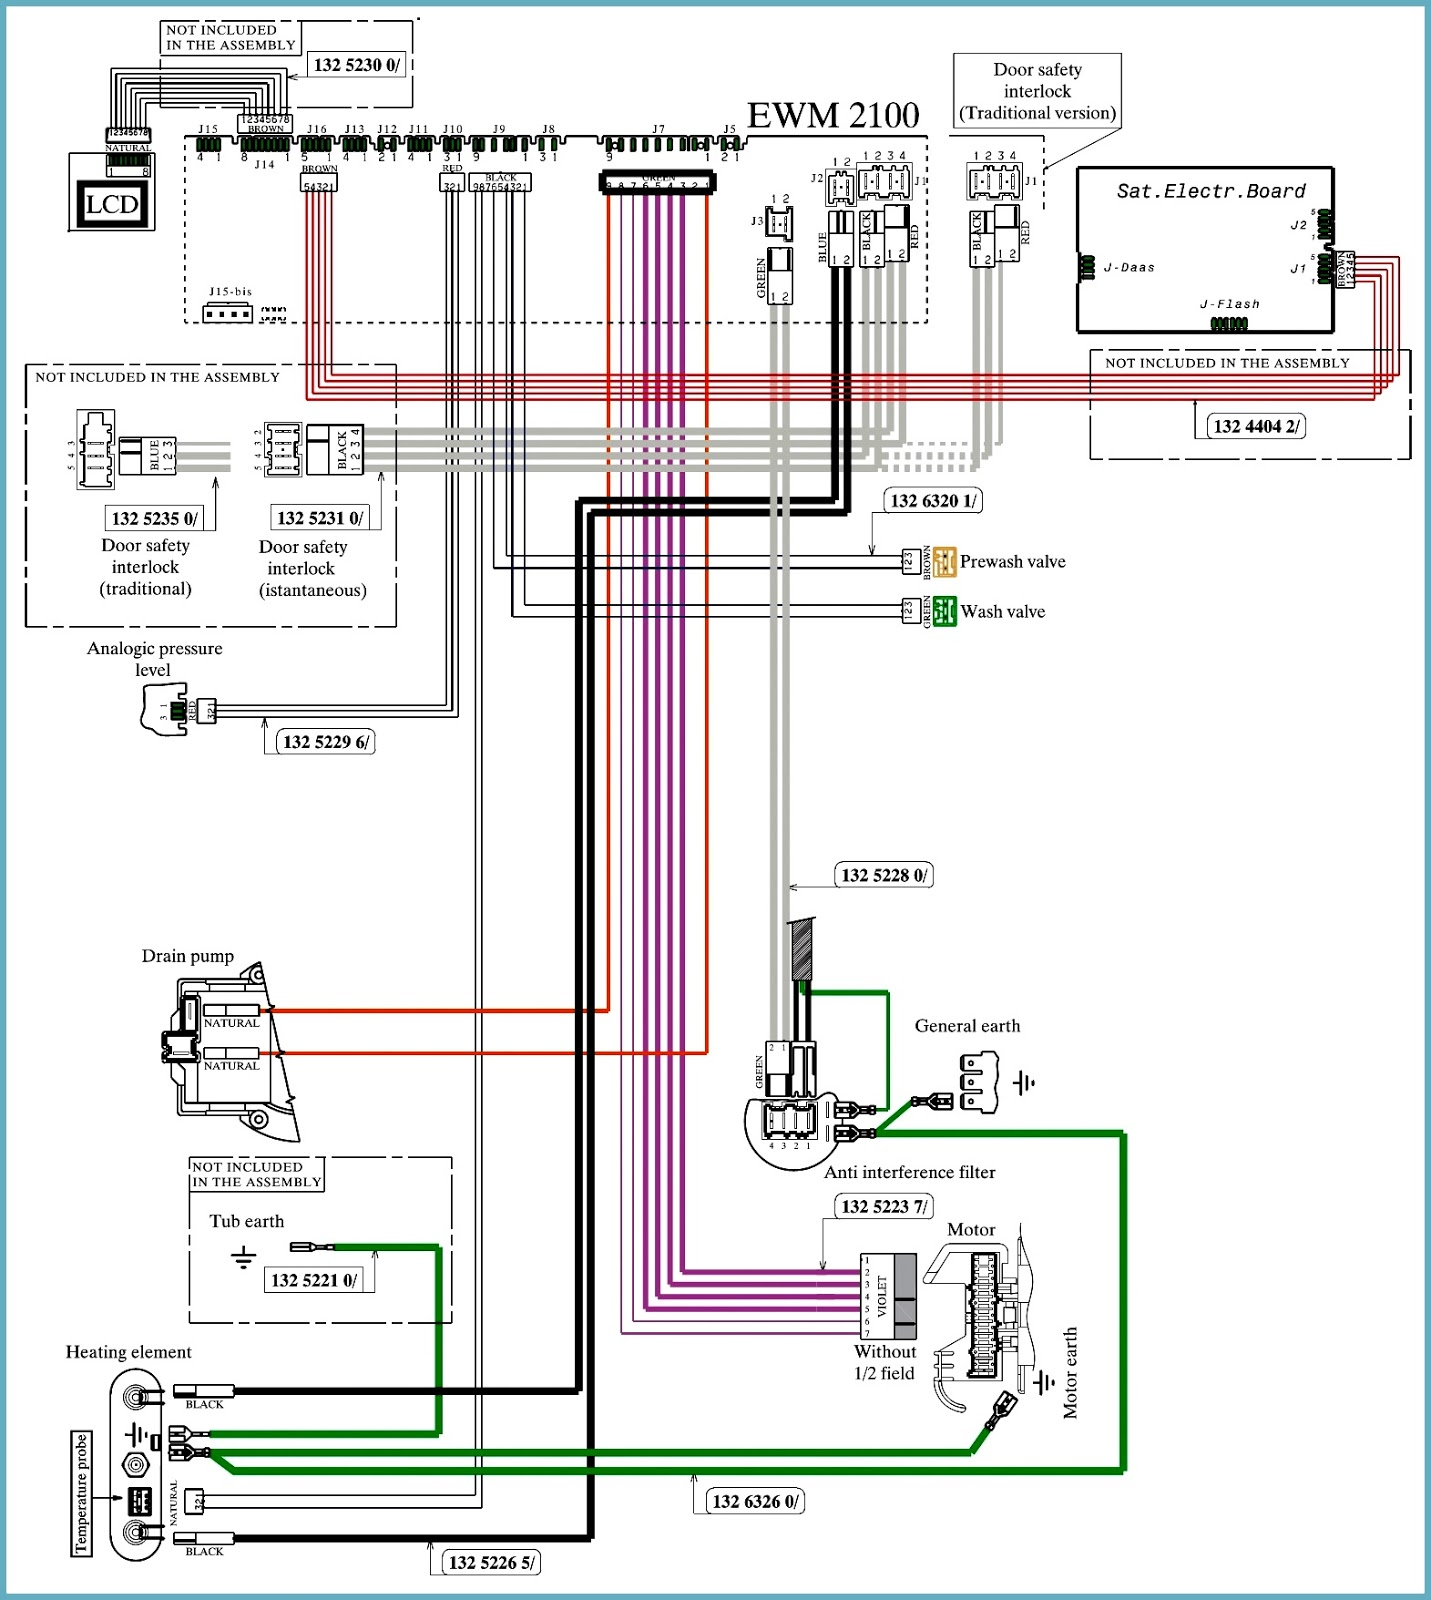 wiring%2Bdiagram electrolux wiring diagram electrolux dishwasher service manual Basic Electrical Wiring Diagrams at soozxer.org